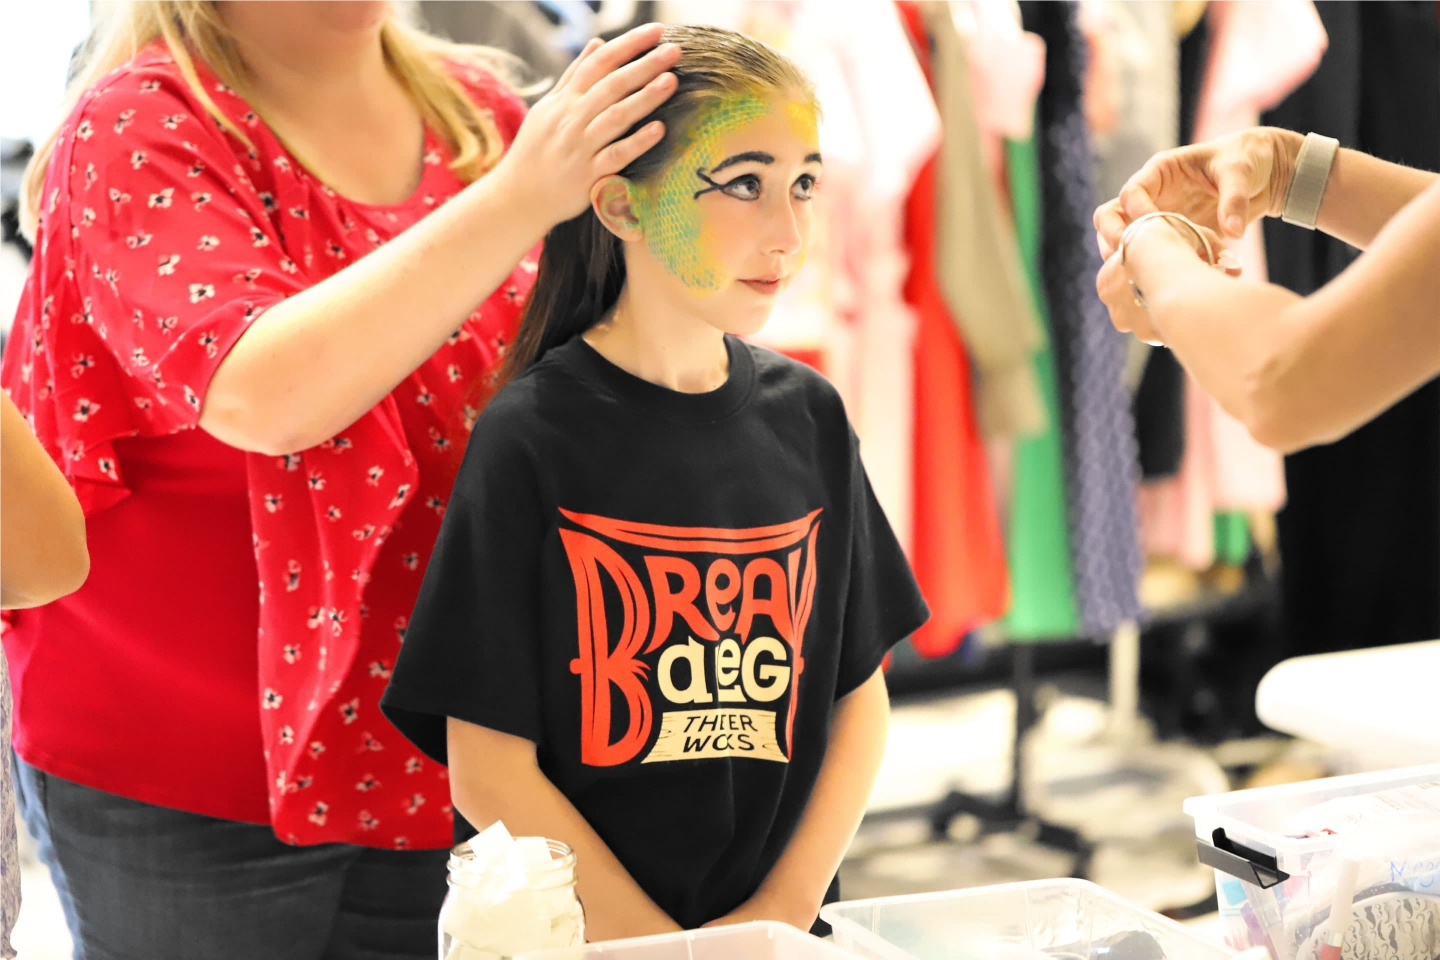 Theater t-shirt on girl getting hair and makeup